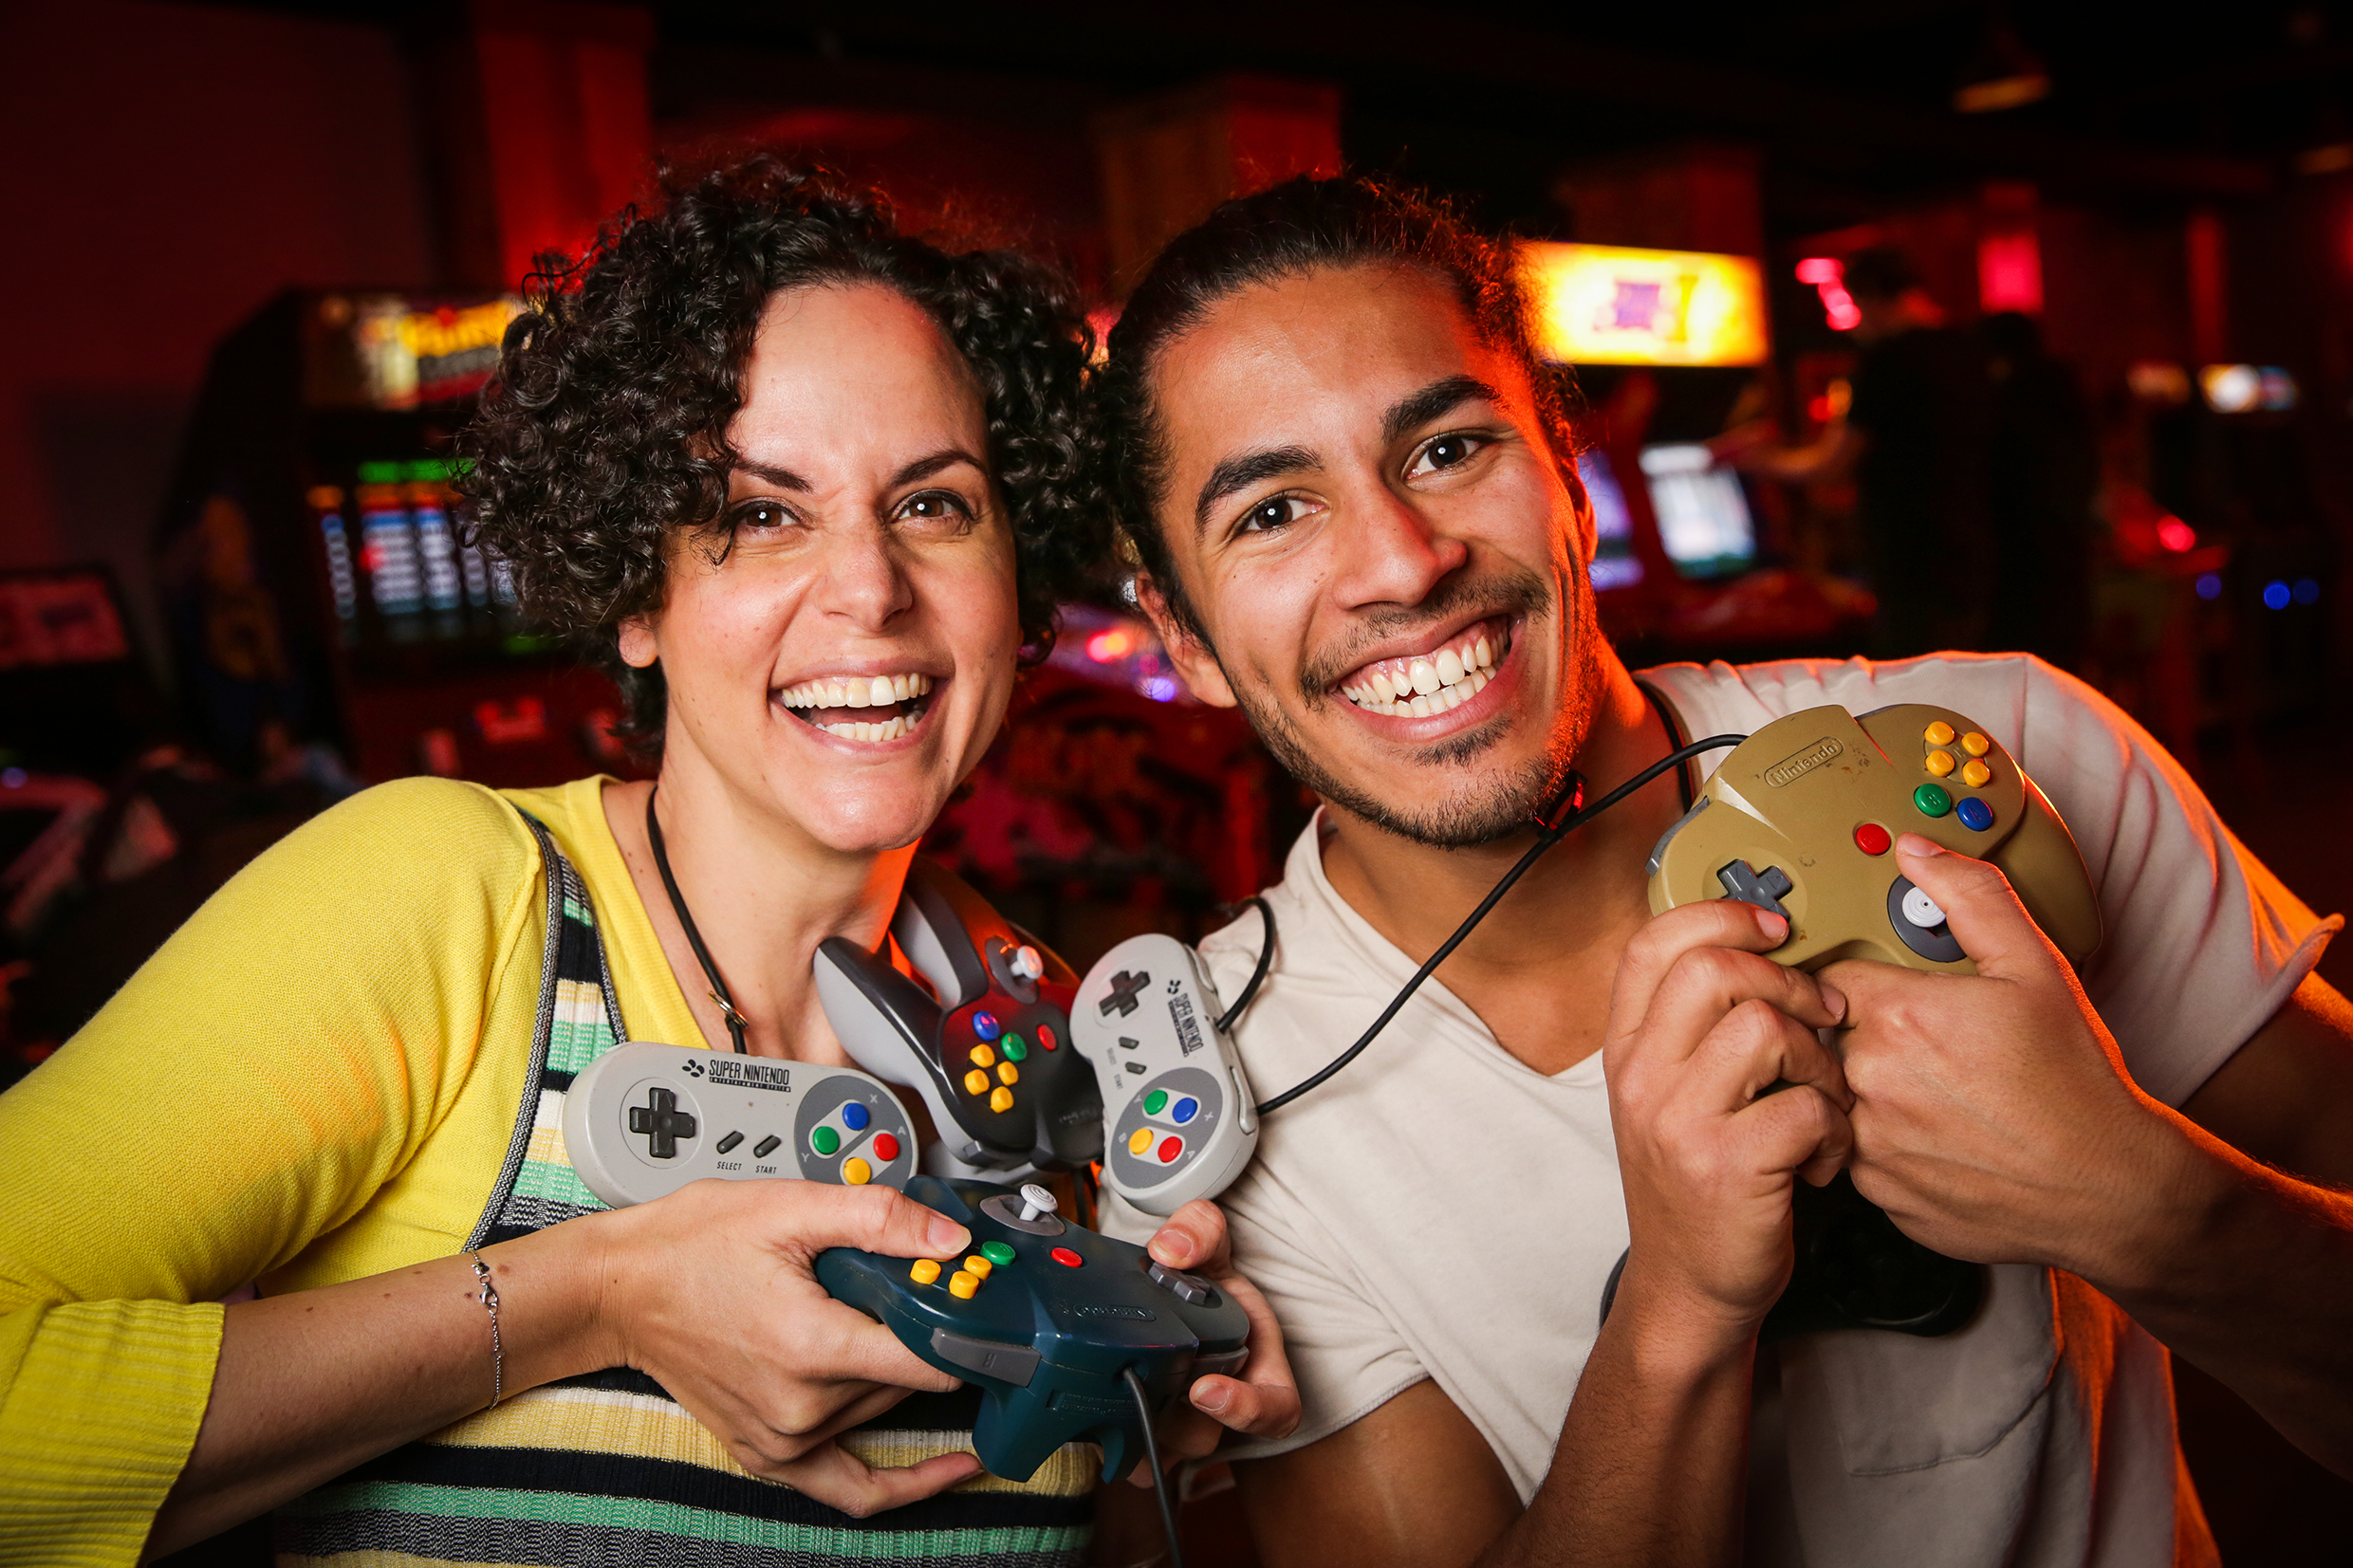 A celebration of retro gaming has landed at QV Melbourne